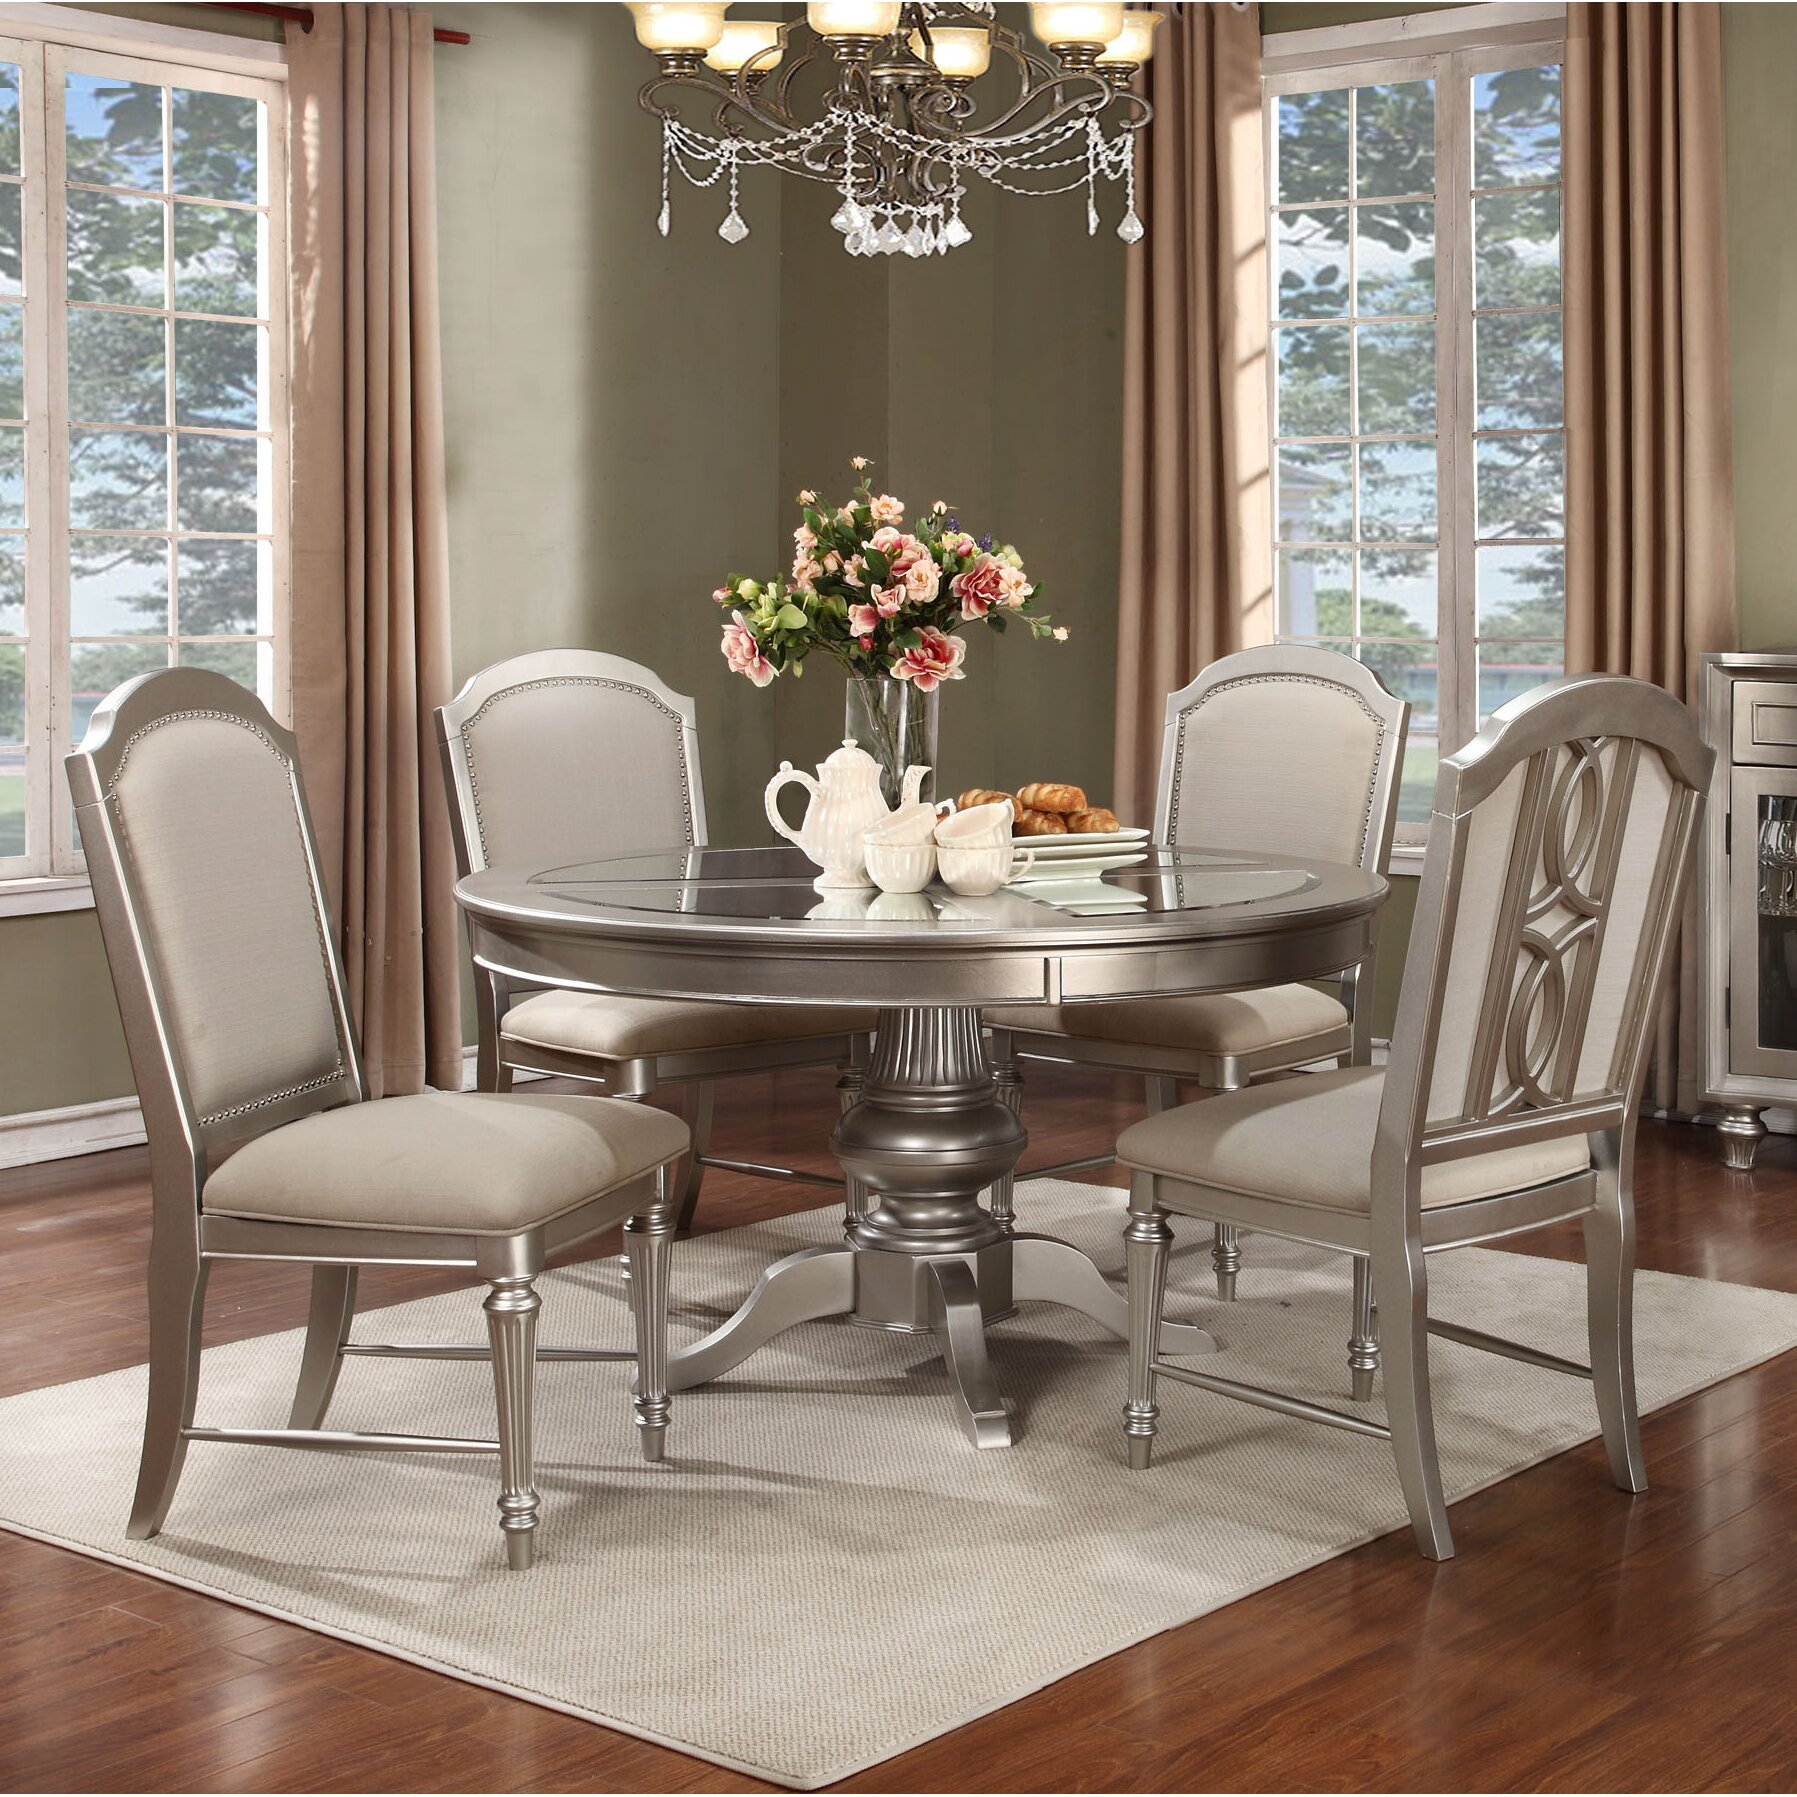 Avalon furniture regency park 5 piece dining set reviews wayfair for Regency furniture living room sets